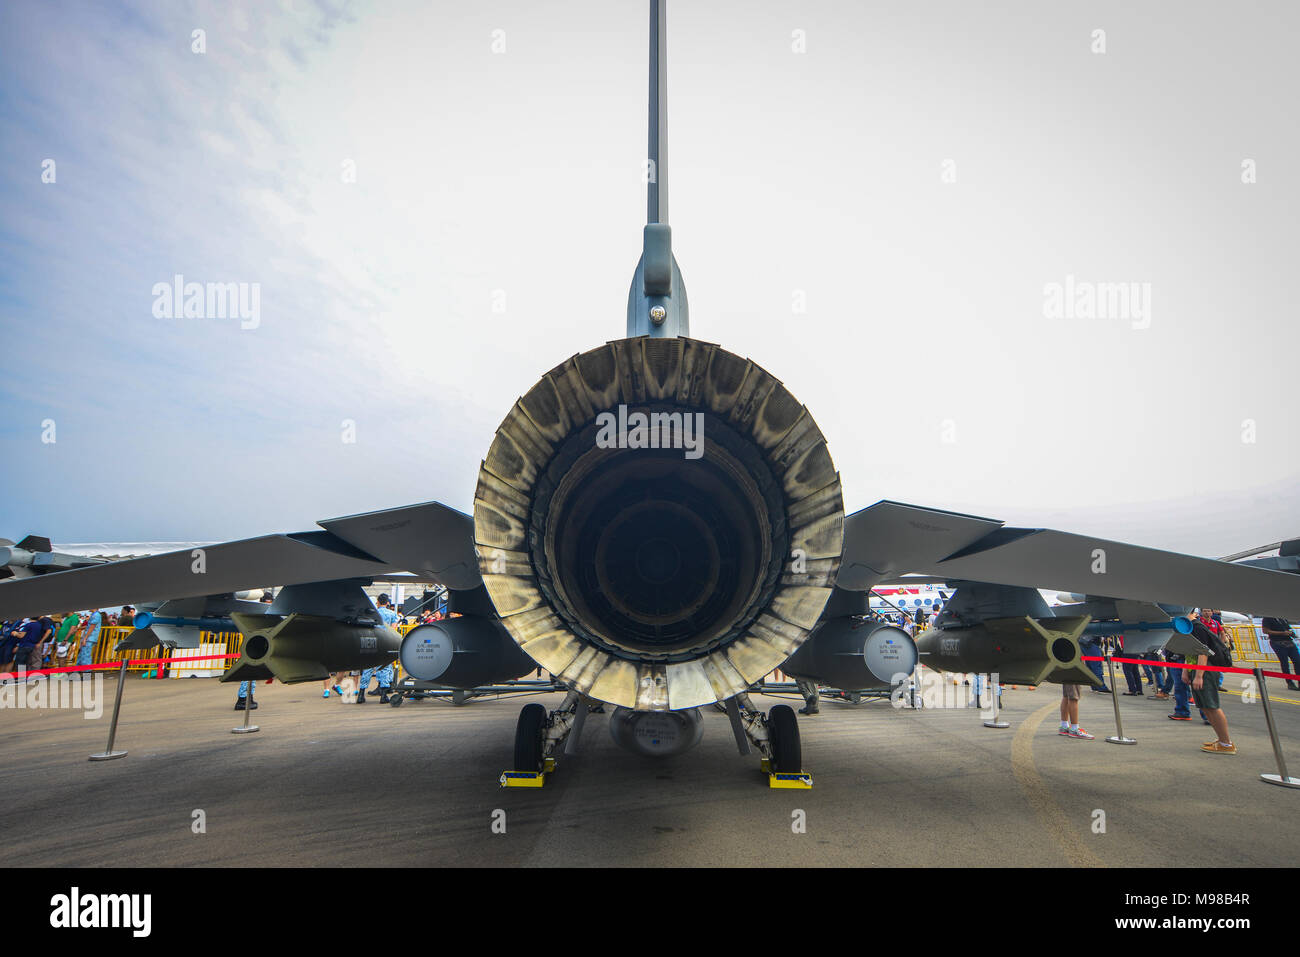 Singapore - Feb 11, 2018. Back view of Lockheed Martin F-16D Fighting Falcon fighter aircraft of Singapore Air Force (RSAF) in Changi, Singapore. - Stock Image